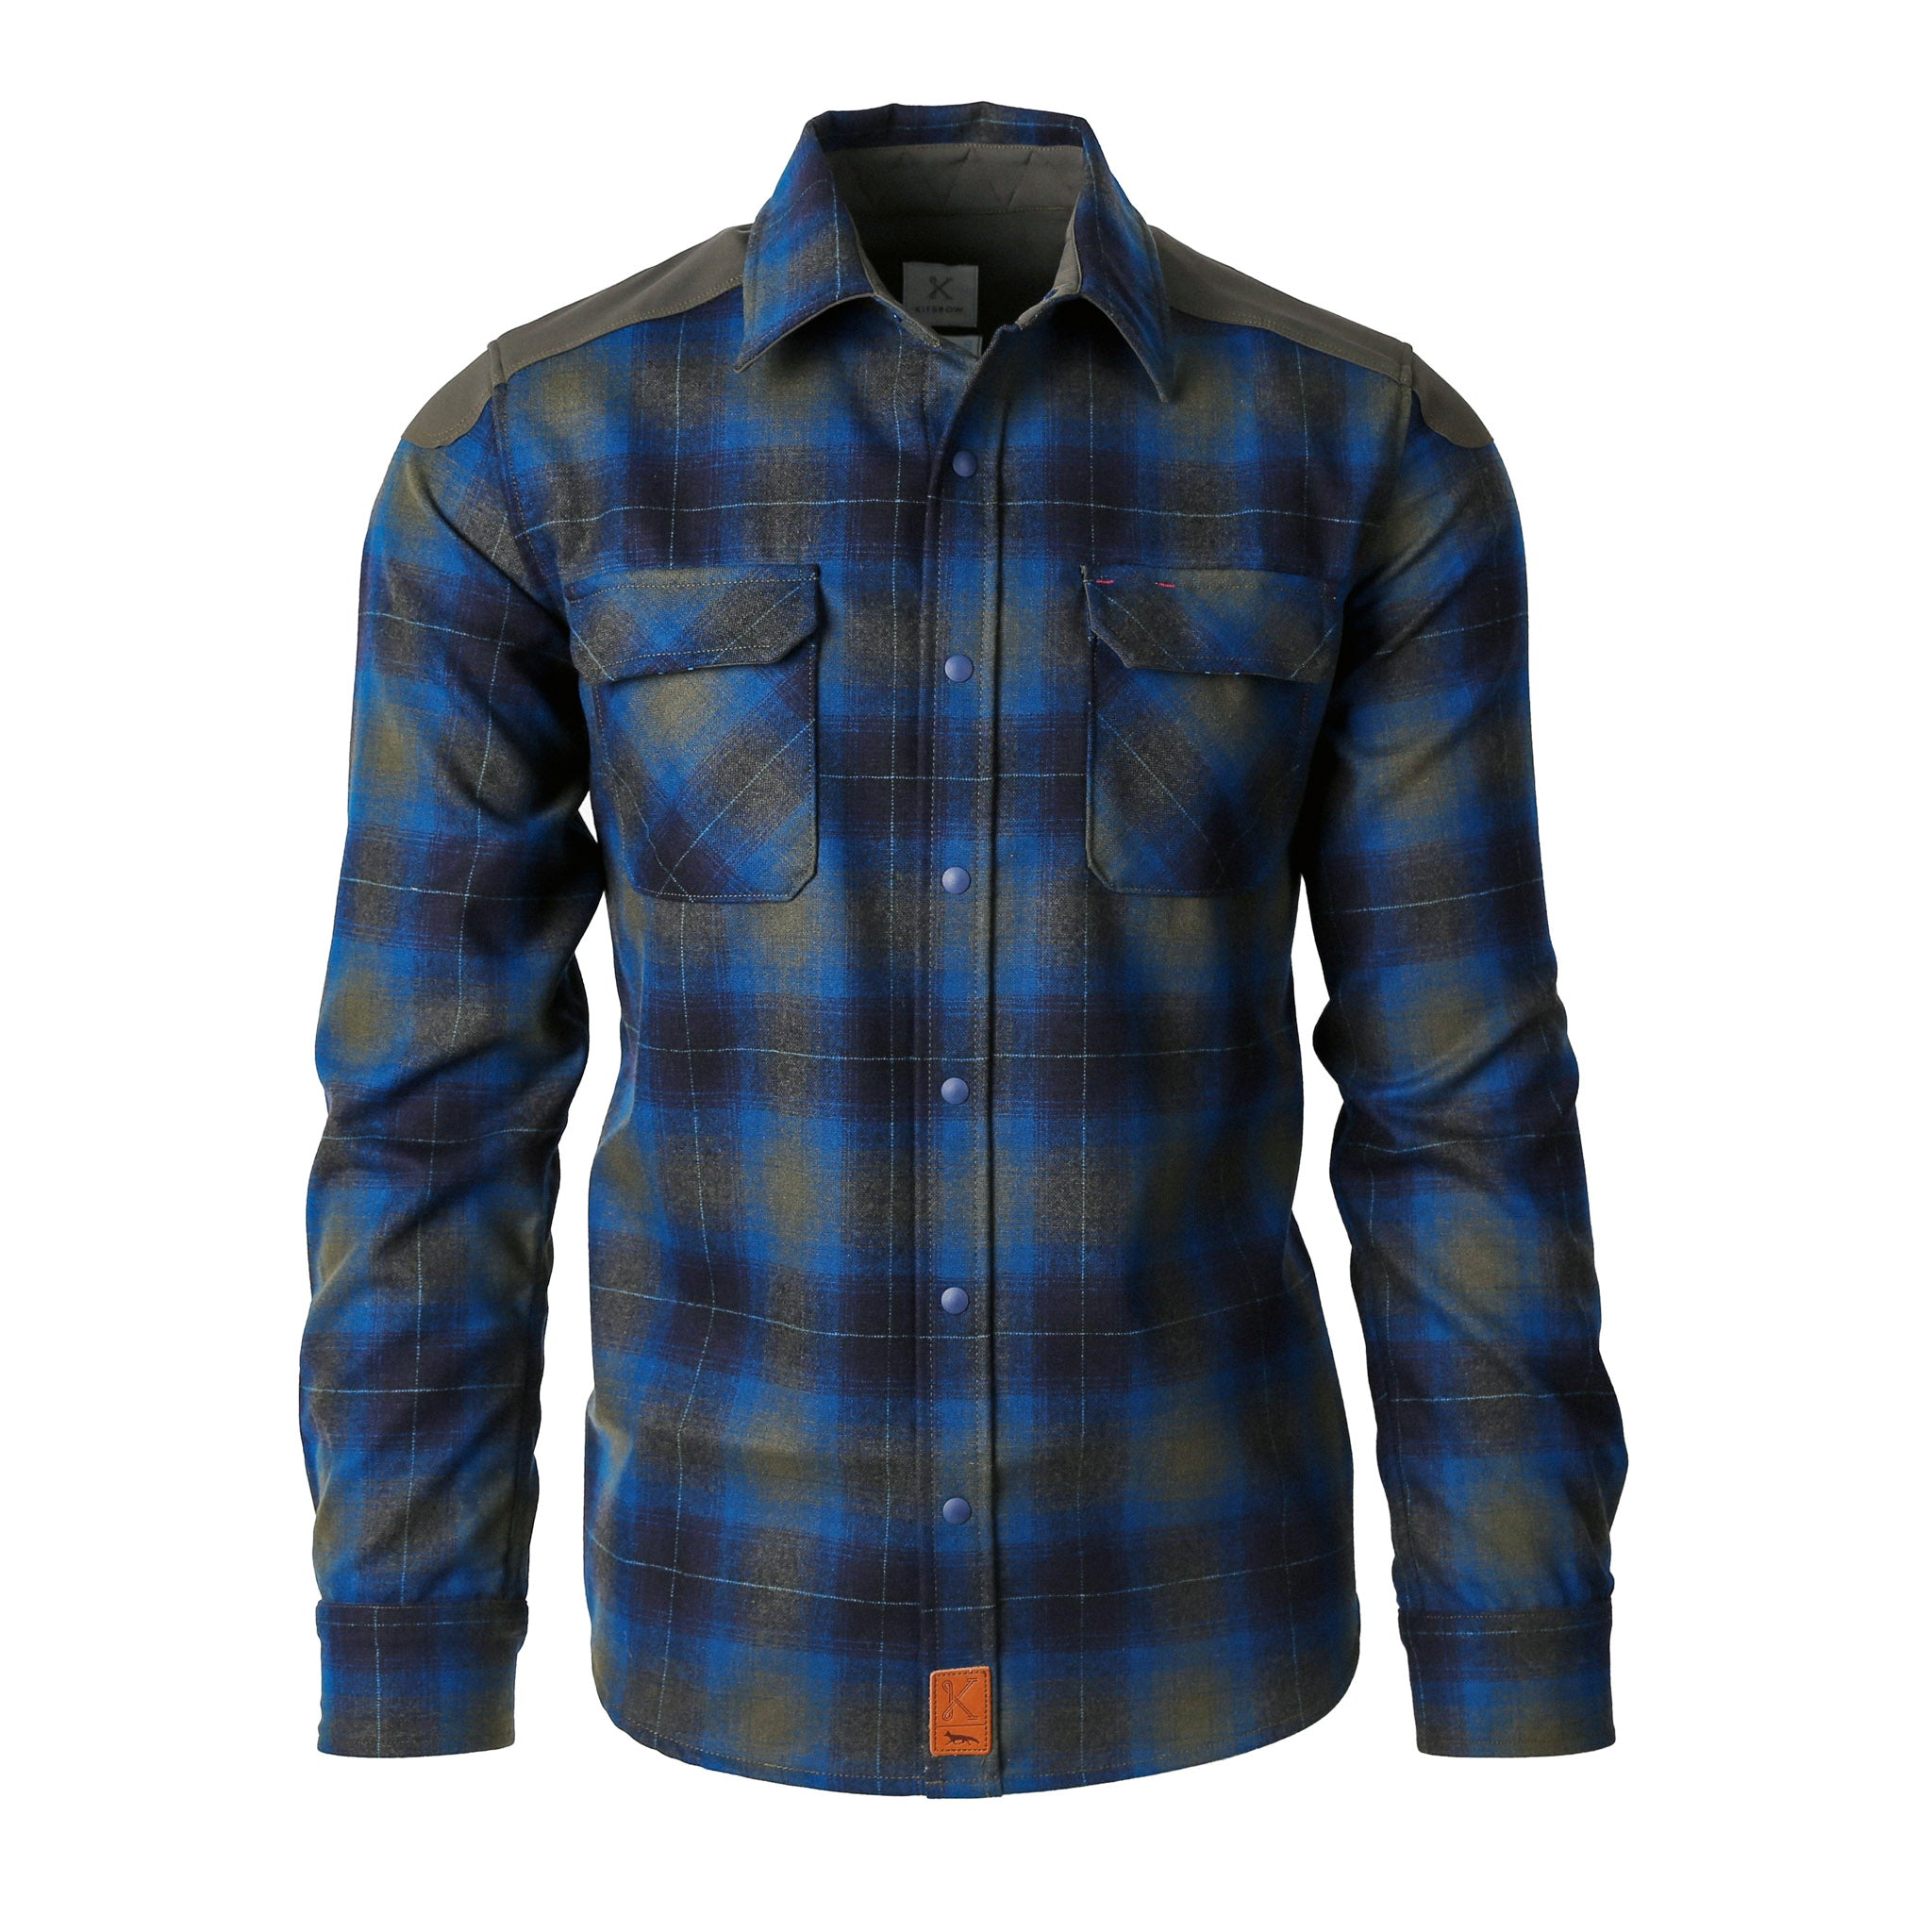 Swift X Kitsbow Icon Shirt Mendocino Blue Swift